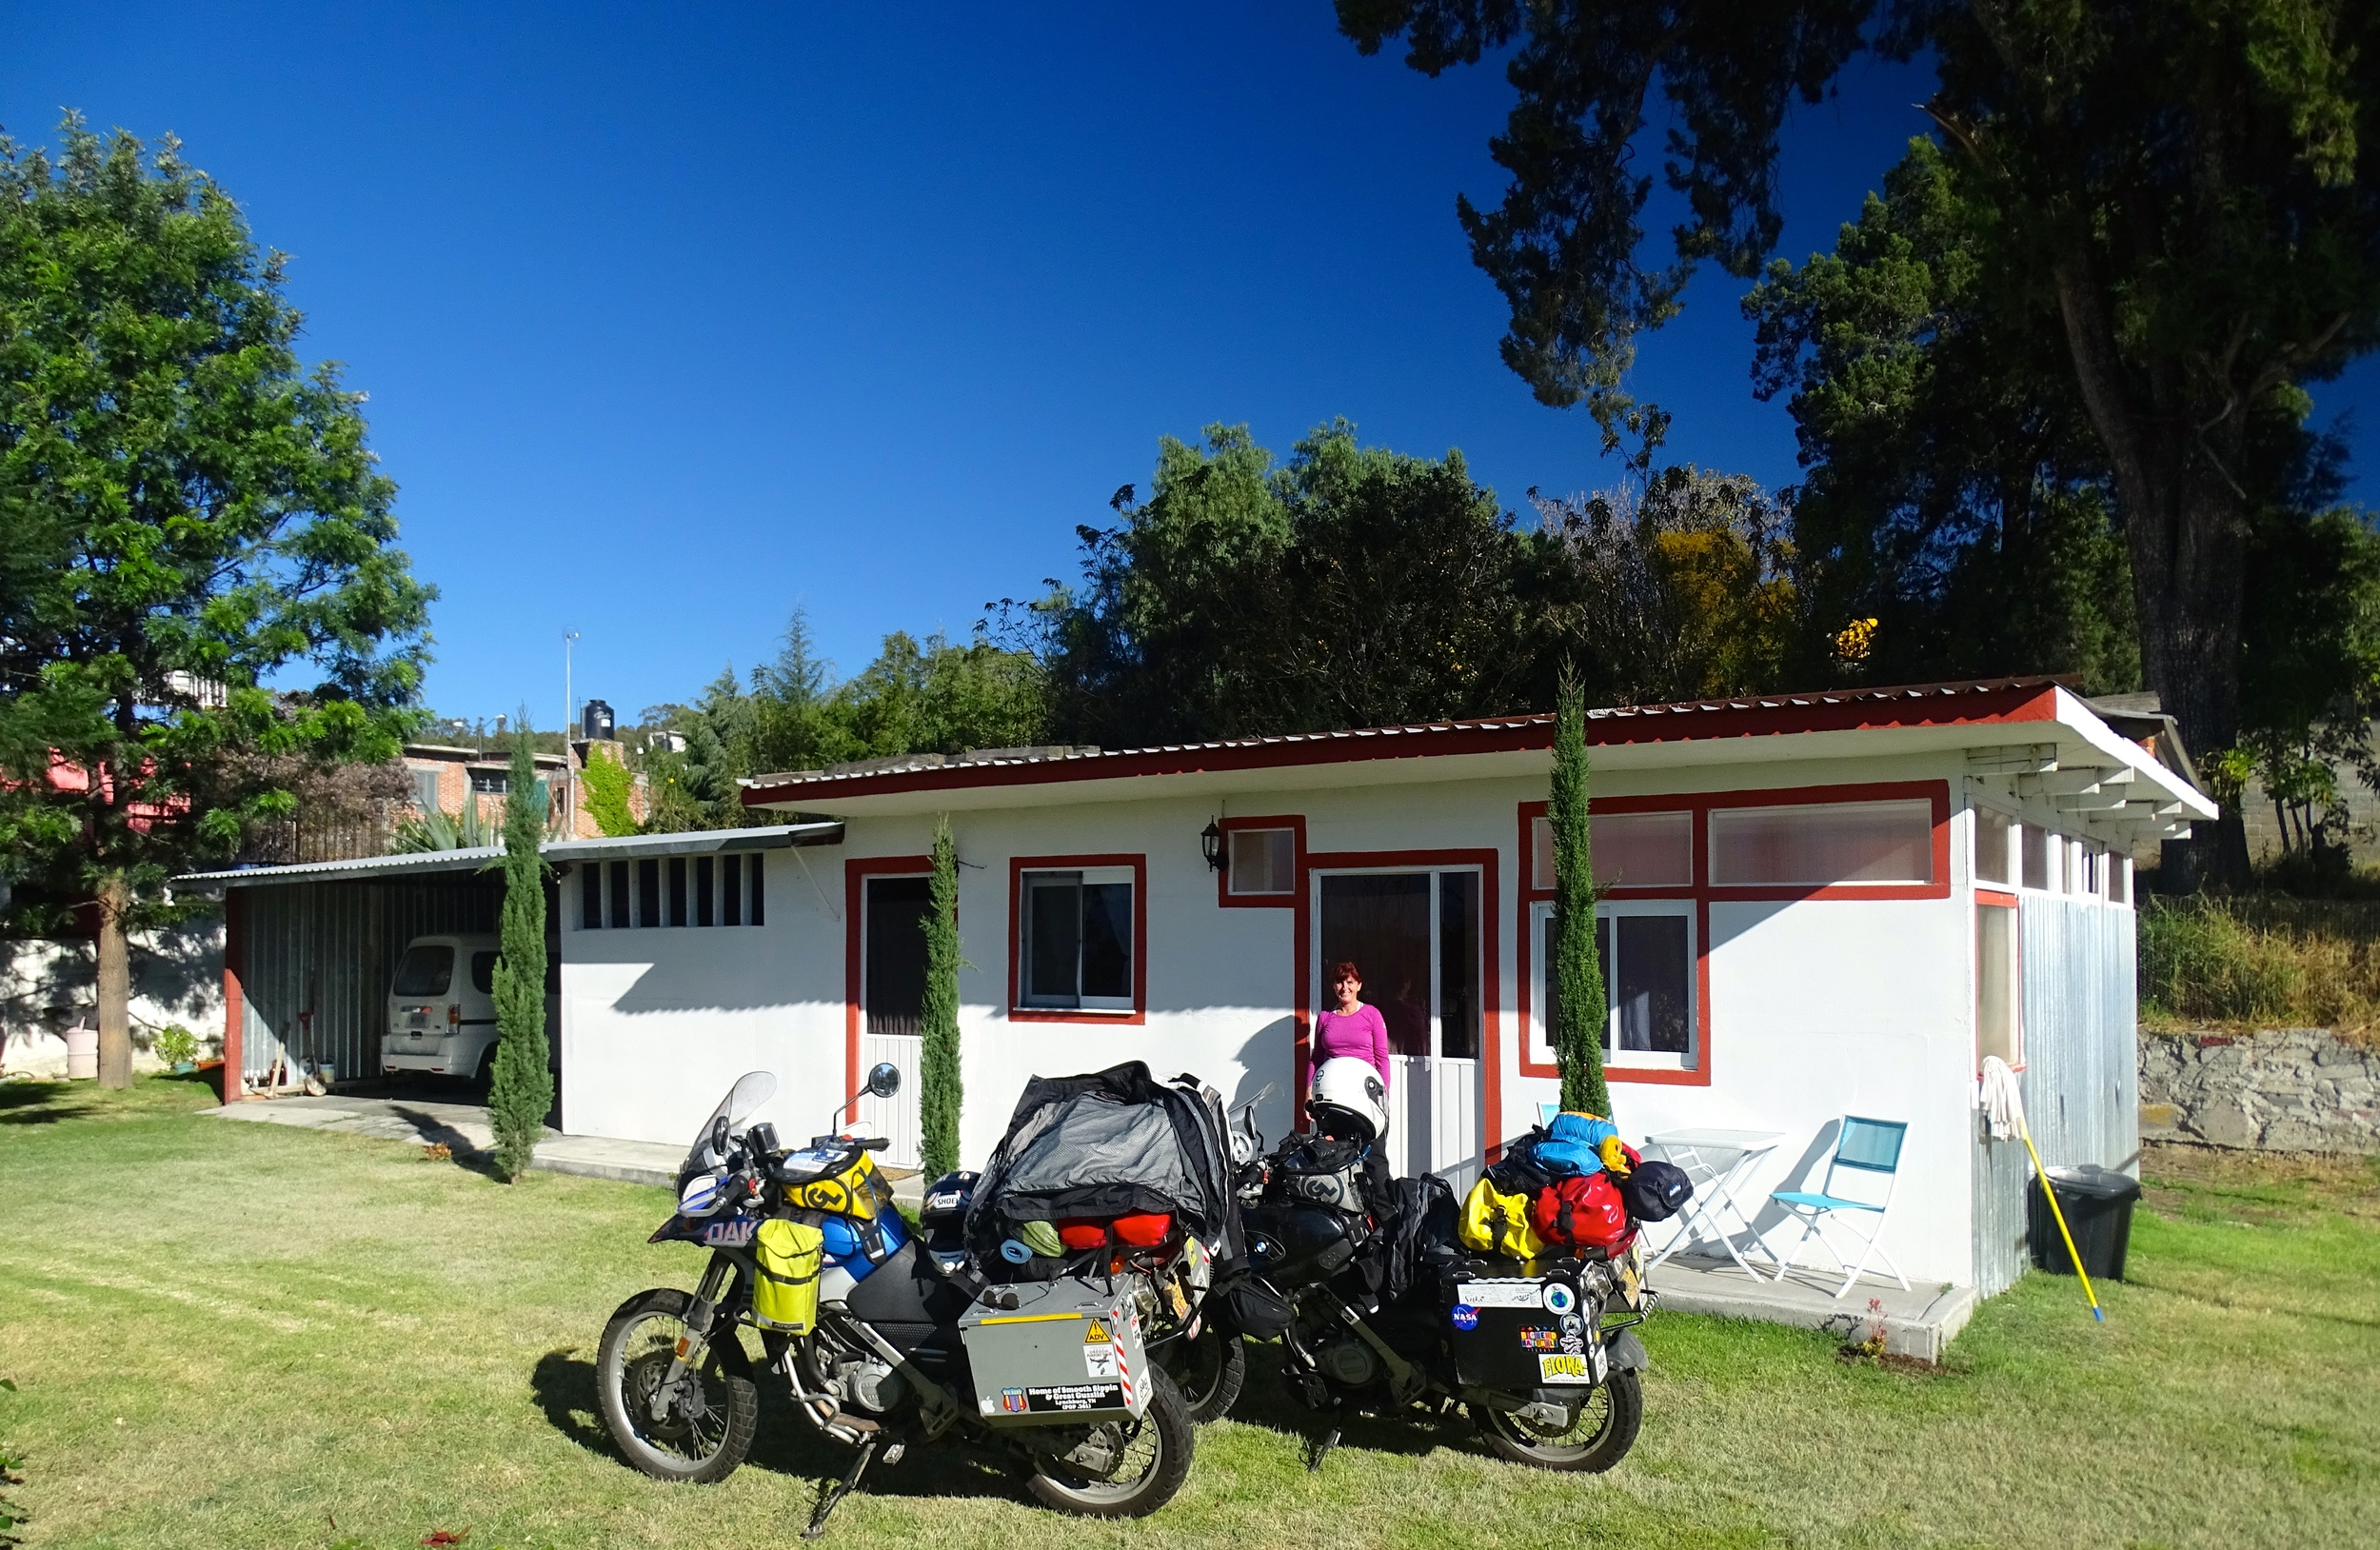 Our home for a week in Tlaxcala with Airbnb hosts Sharon and Jaimie.